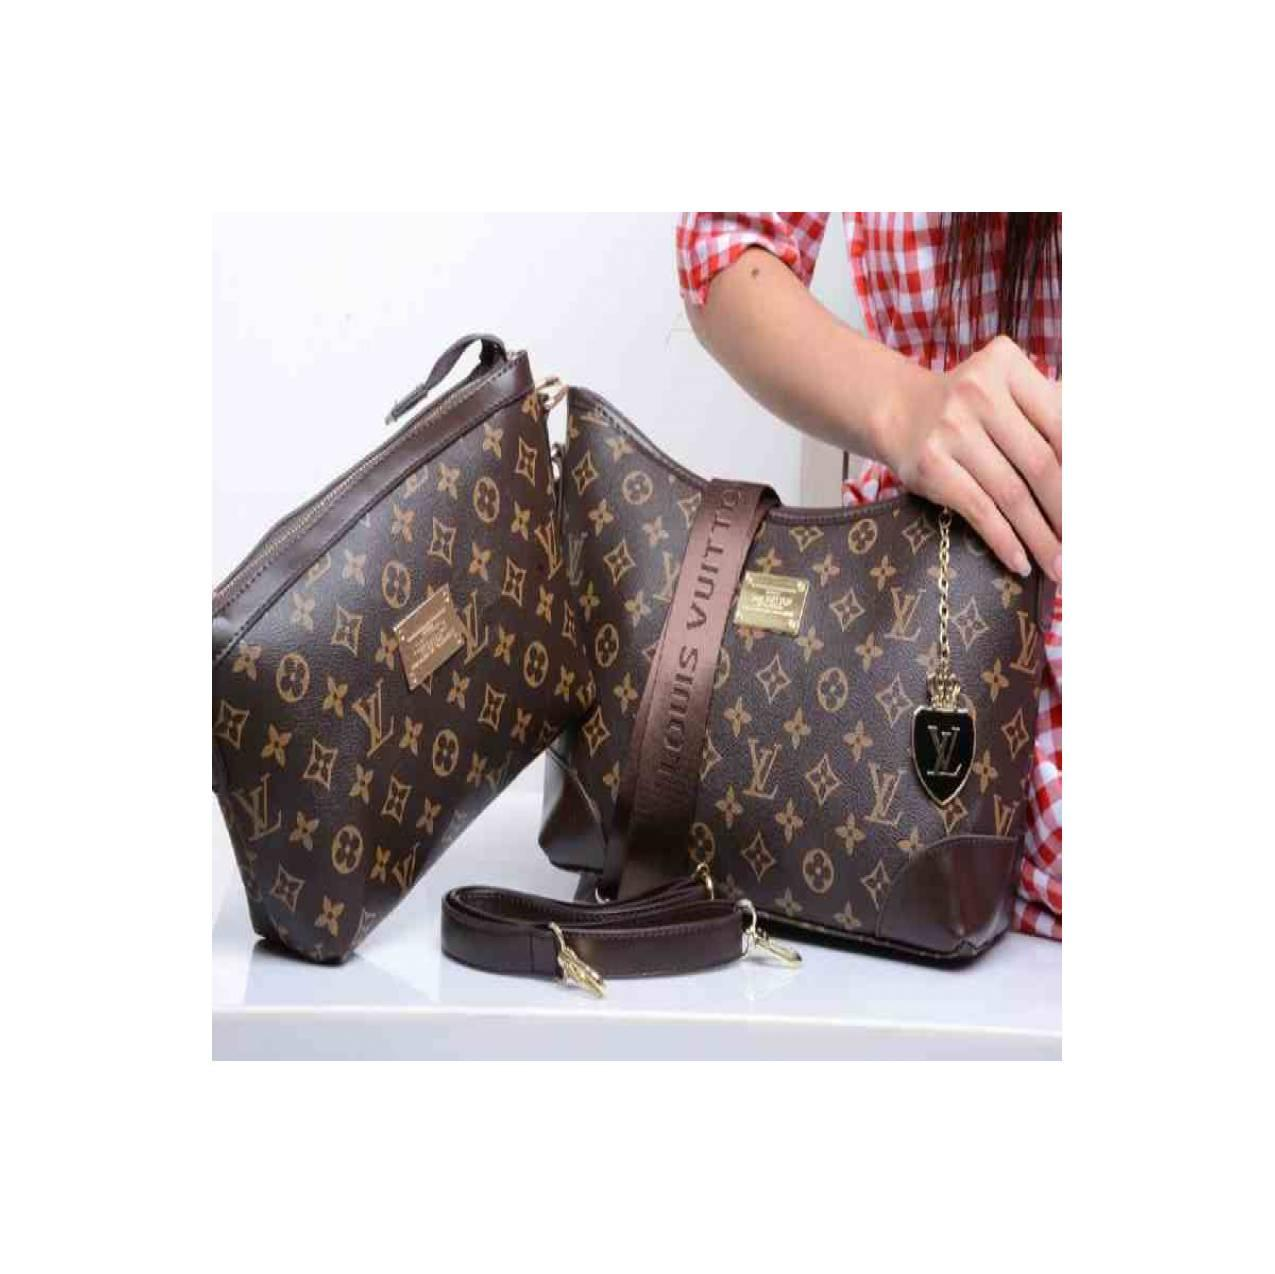 TAS WANITA BRANDED IMPORT SELEMPANG LOUIS VUITTON 372180-1 MURAH